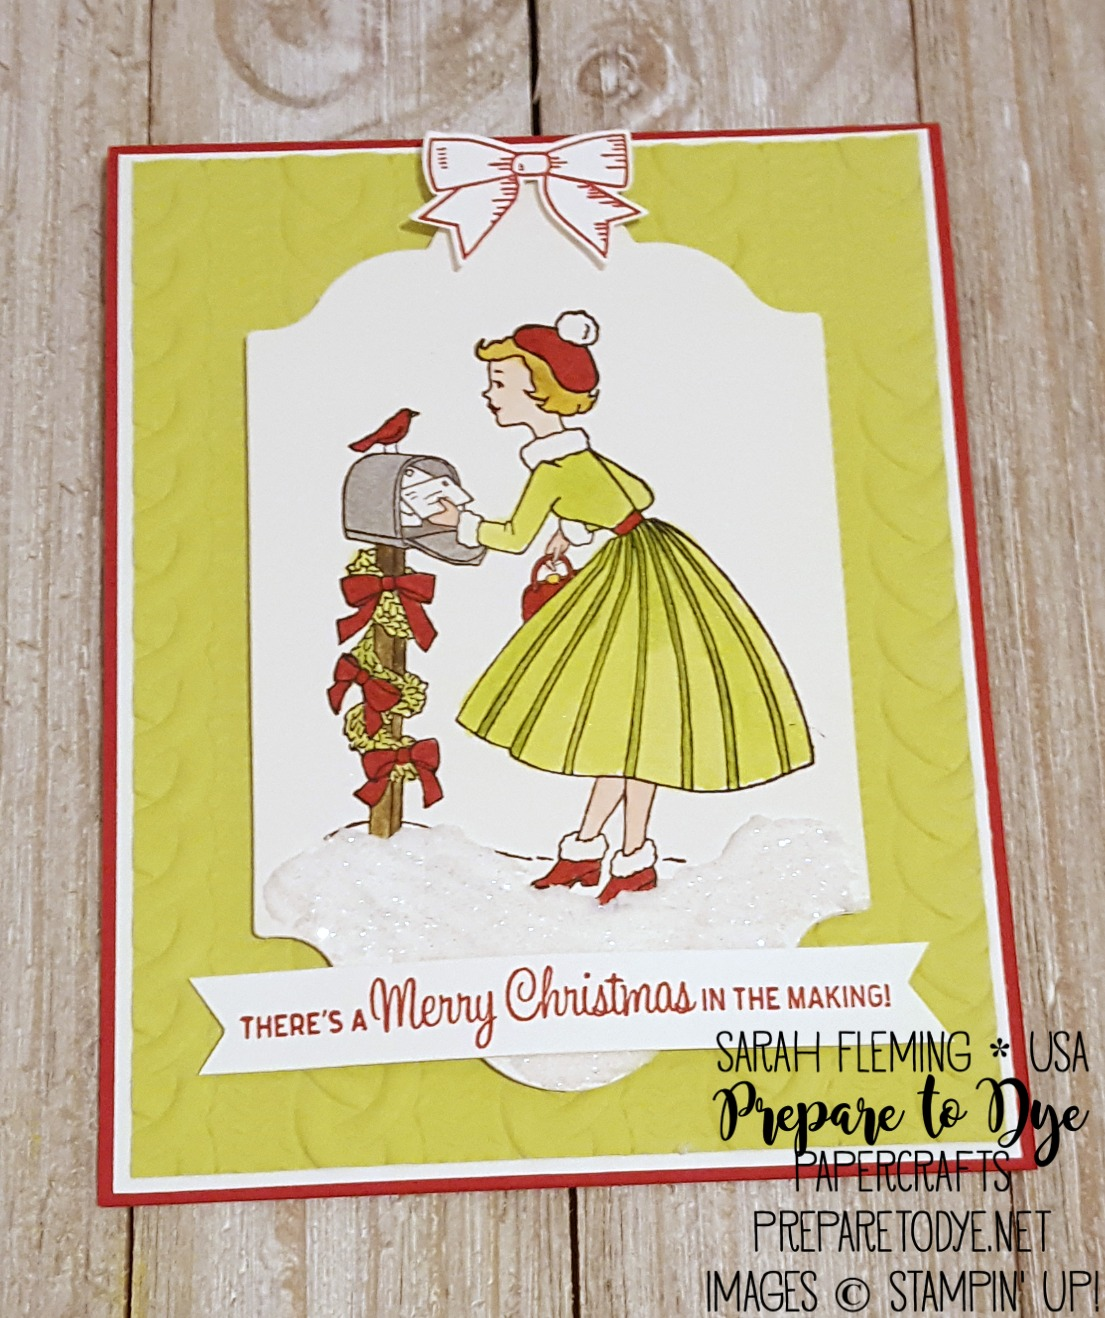 Stampin' Up! Christmas in the Making stamp set with Cable Knit embossing folder, Embossing Paste - Sarah Fleming - Prepare to Dye Papercrafts